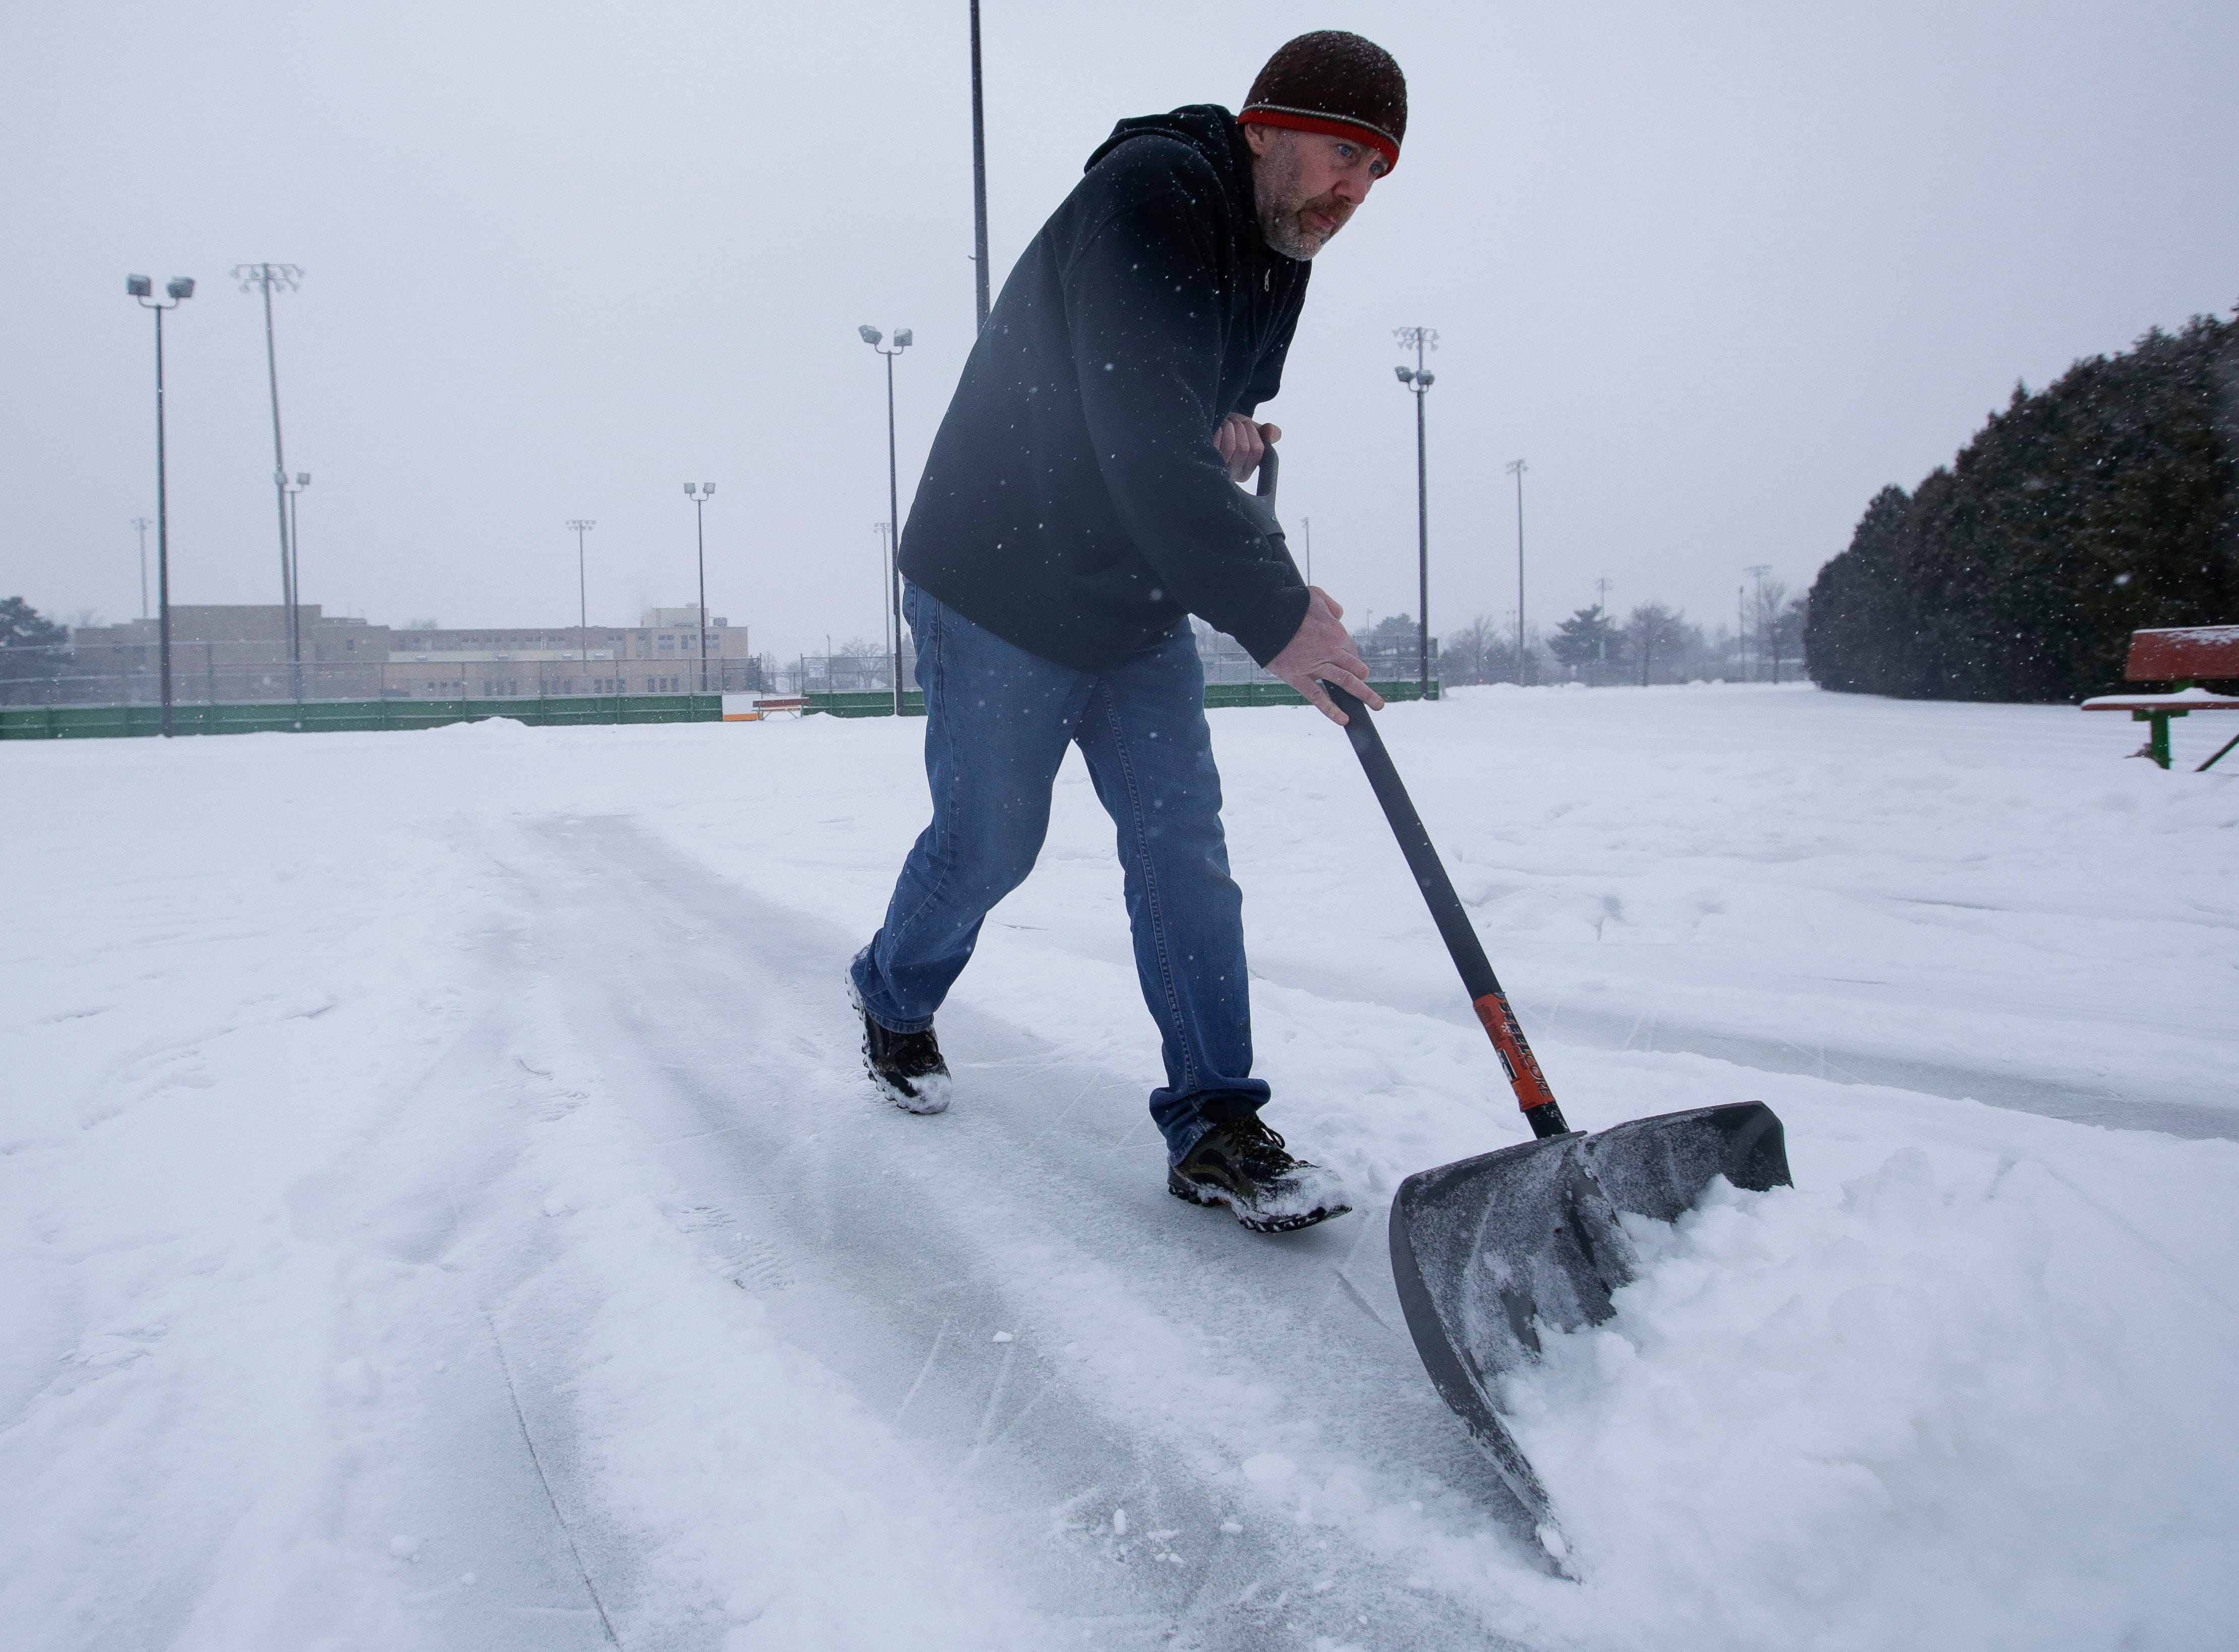 Paul Rath shovels snow off of the ice on Tuesday, January 22, 2019, at Goerke Park in Stevens Point, Wis. A snow storm rolled through the area on Tuesday and is expected to drop 6-8 inches of snow.Tork Mason/USA TODAY NETWORK-Wisconsin